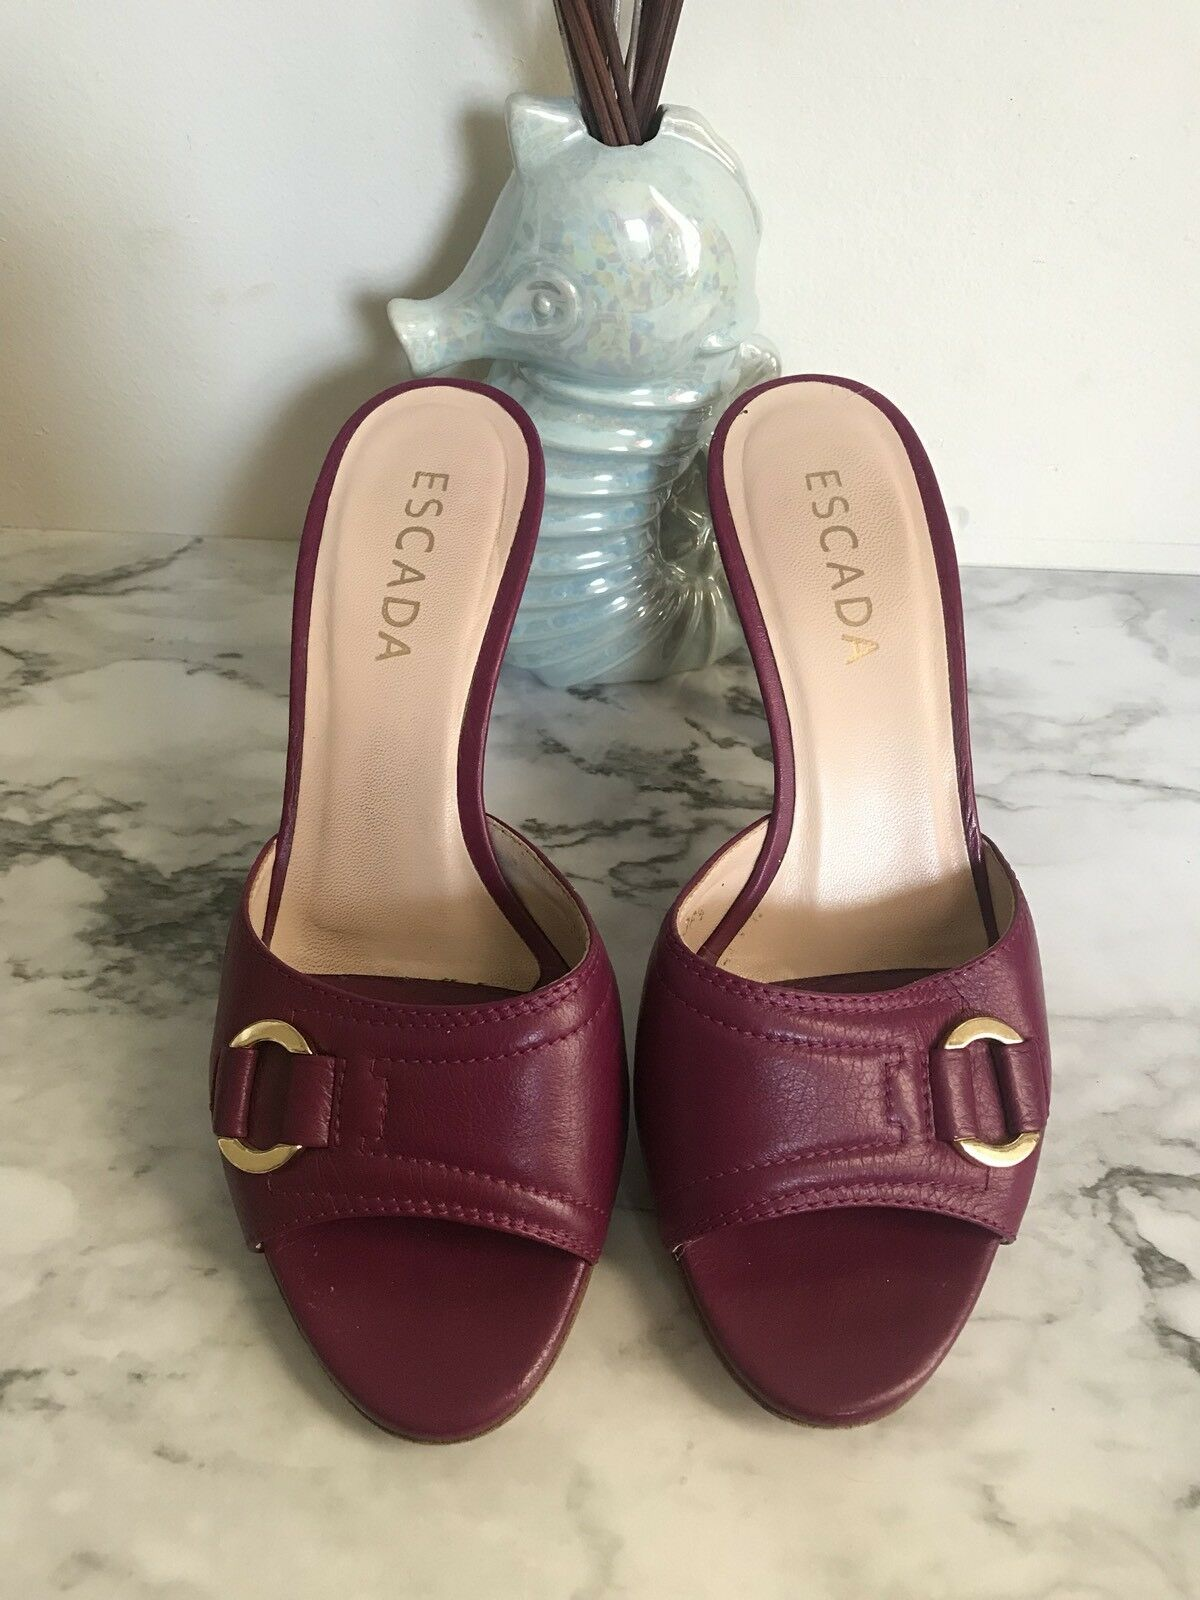 Escada Purple Slip On Leather gold Tone Buckle Sz 6.5 (36 1 2)